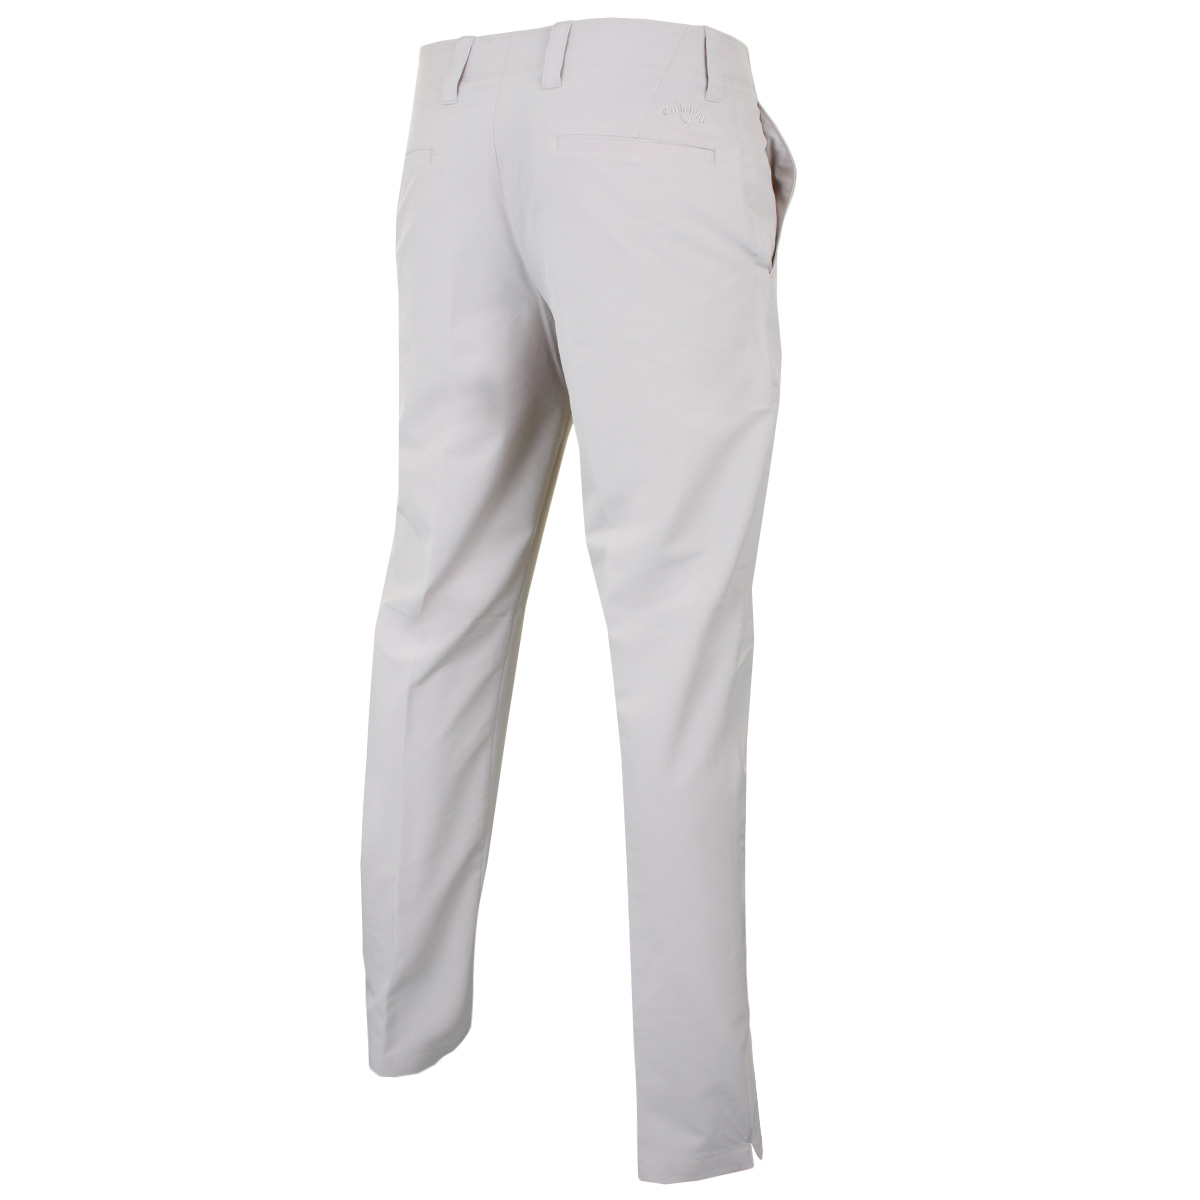 Callaway-Golf-Mens-2020-Chev-Tech-II-Lightweight-Golf-Trousers-27-OFF-RRP thumbnail 16